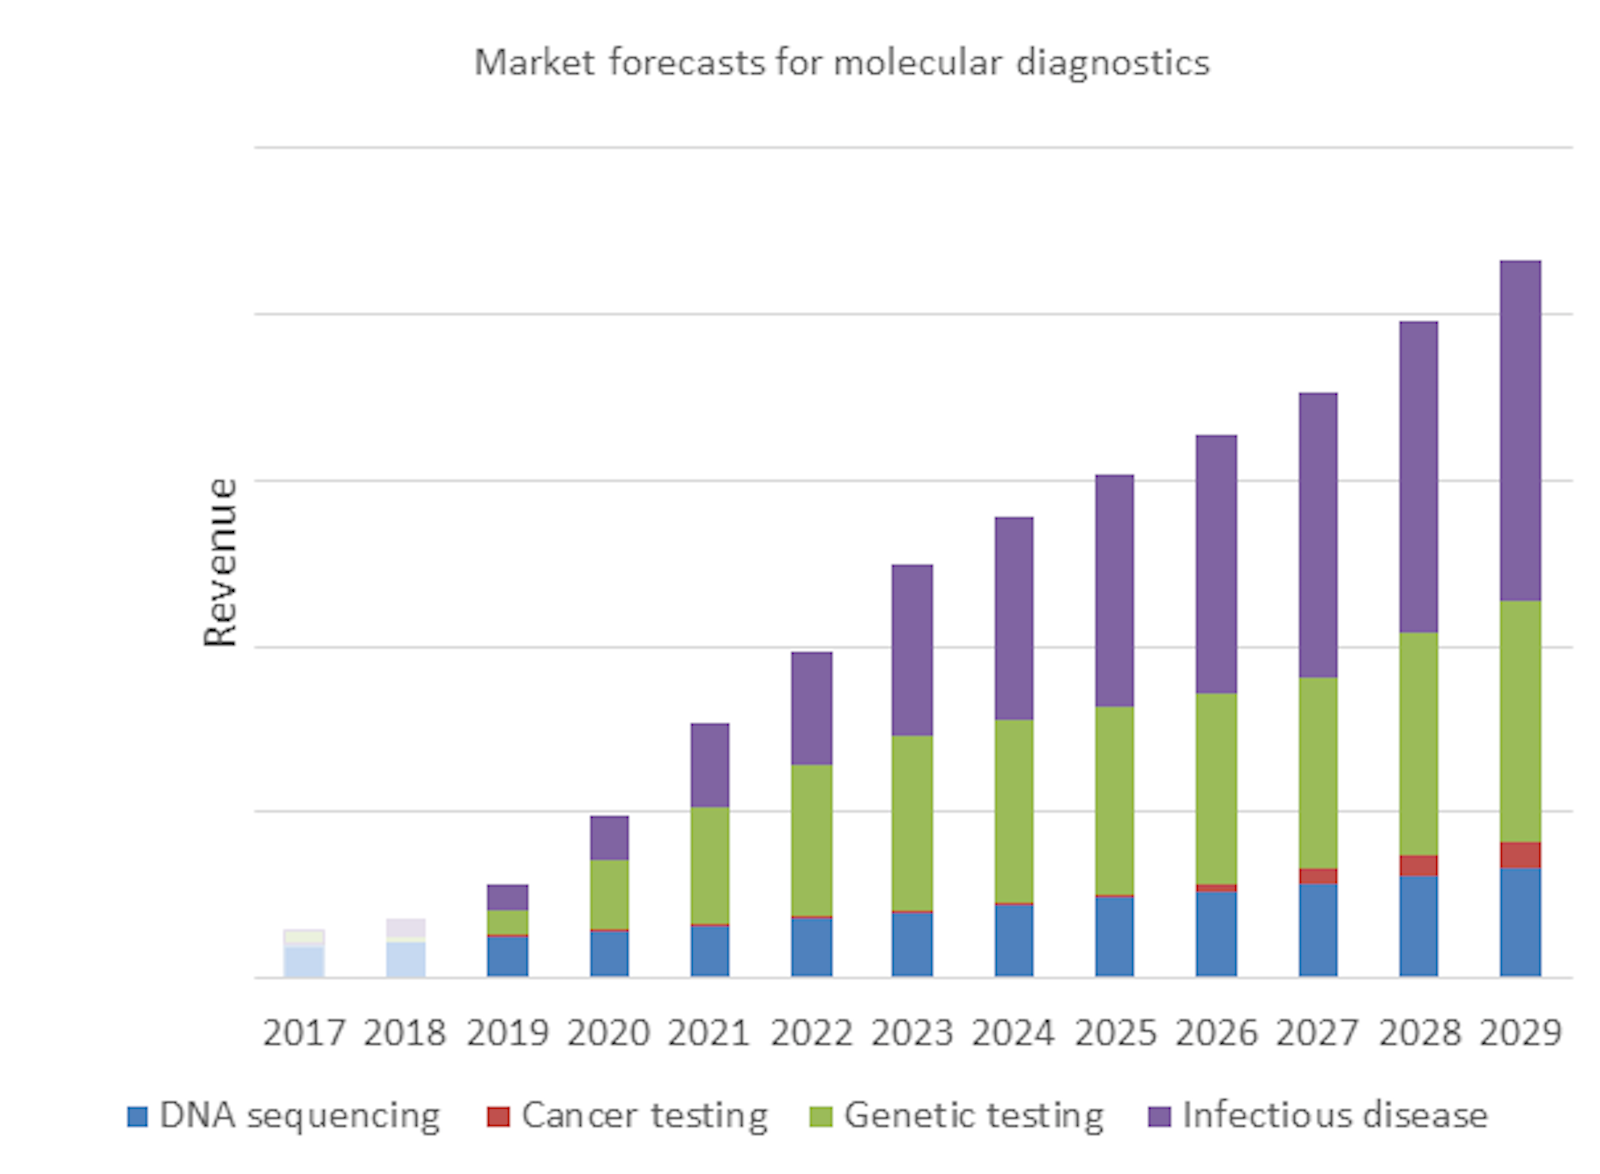 Biomedical Diagnostics at Point-of-Care 2019-2029